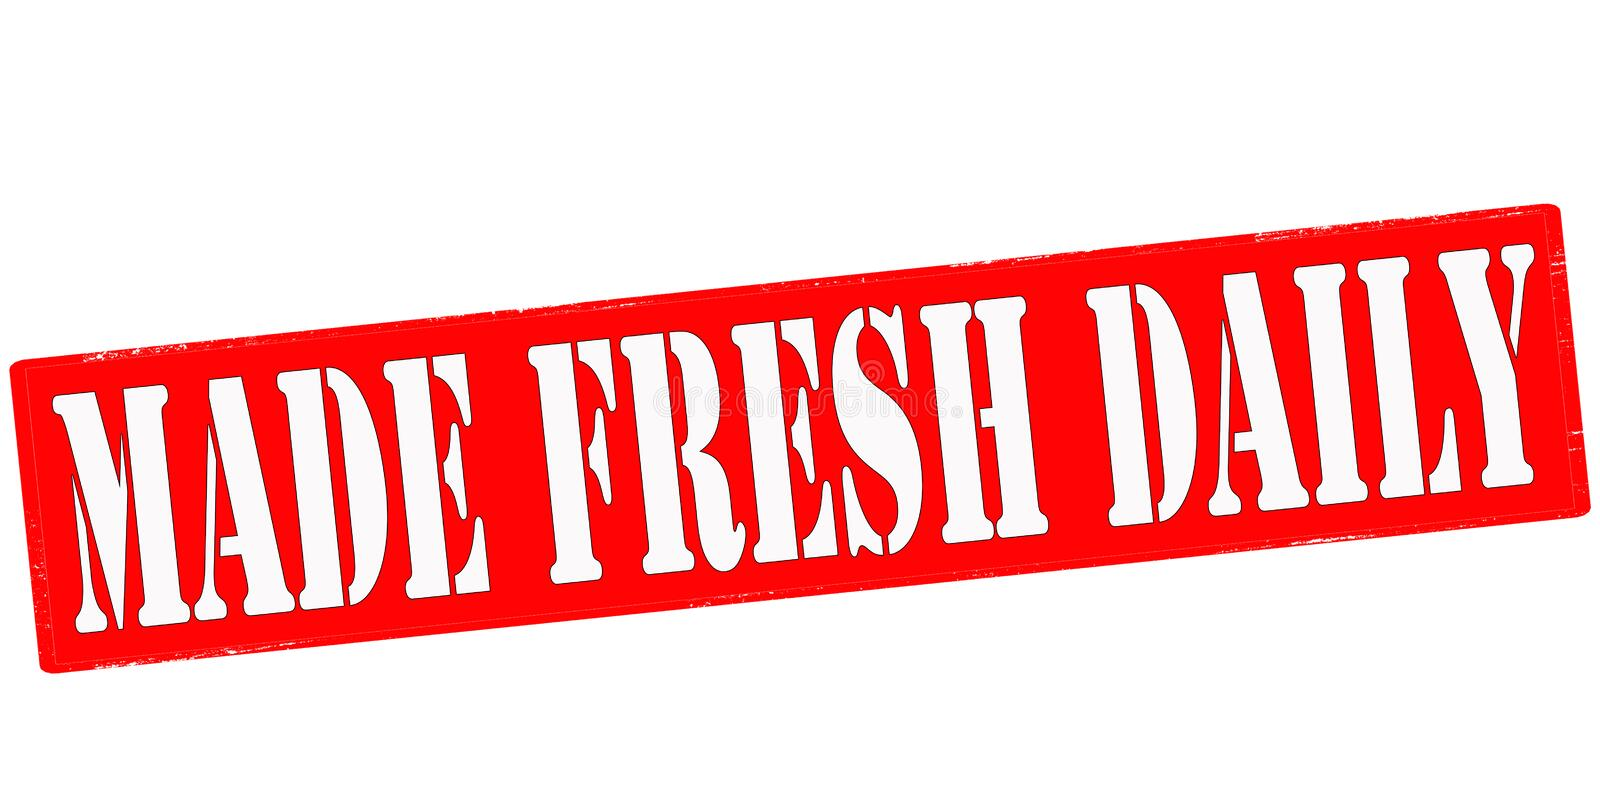 Made fresh daily. Rubber stamp with text made fresh daily inside, illustration vector illustration